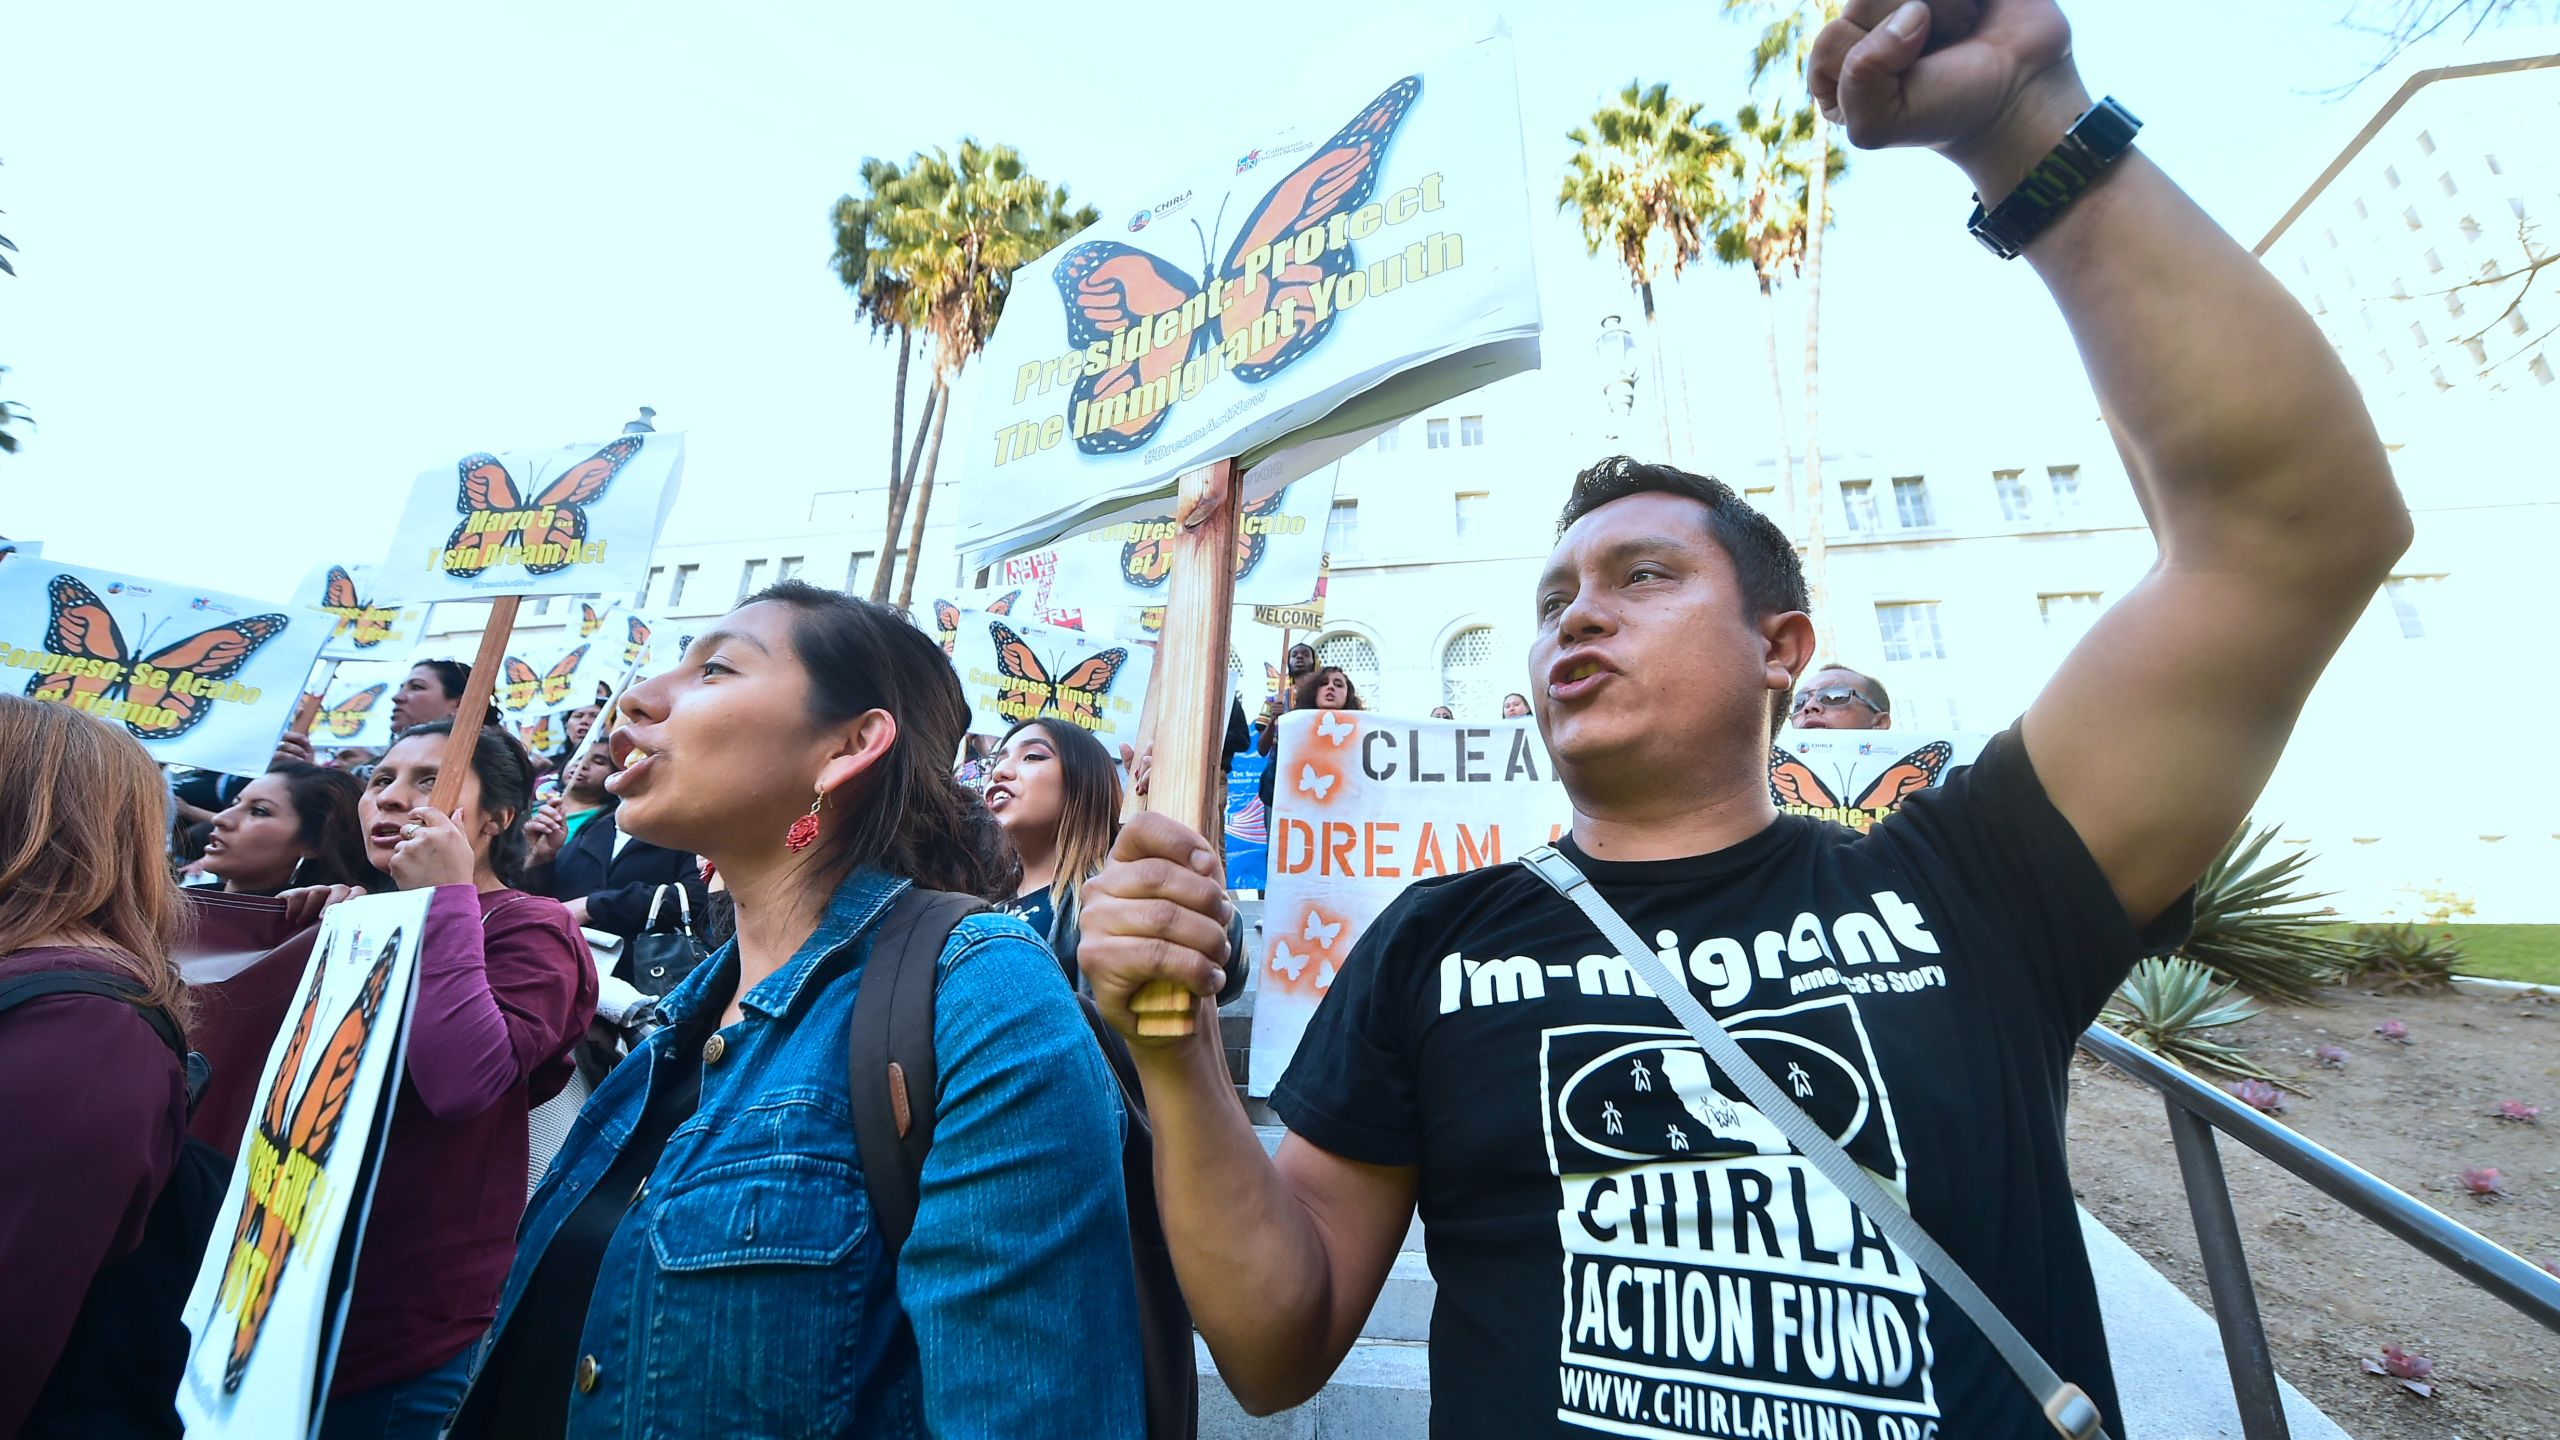 DACA recipients and advocates rally in support of the Deferred Action for Childhood Arrivals program in downtown Los Angeles on March 5, 2018. (Credit: Frederic J. Brown / AFP / Getty Images)